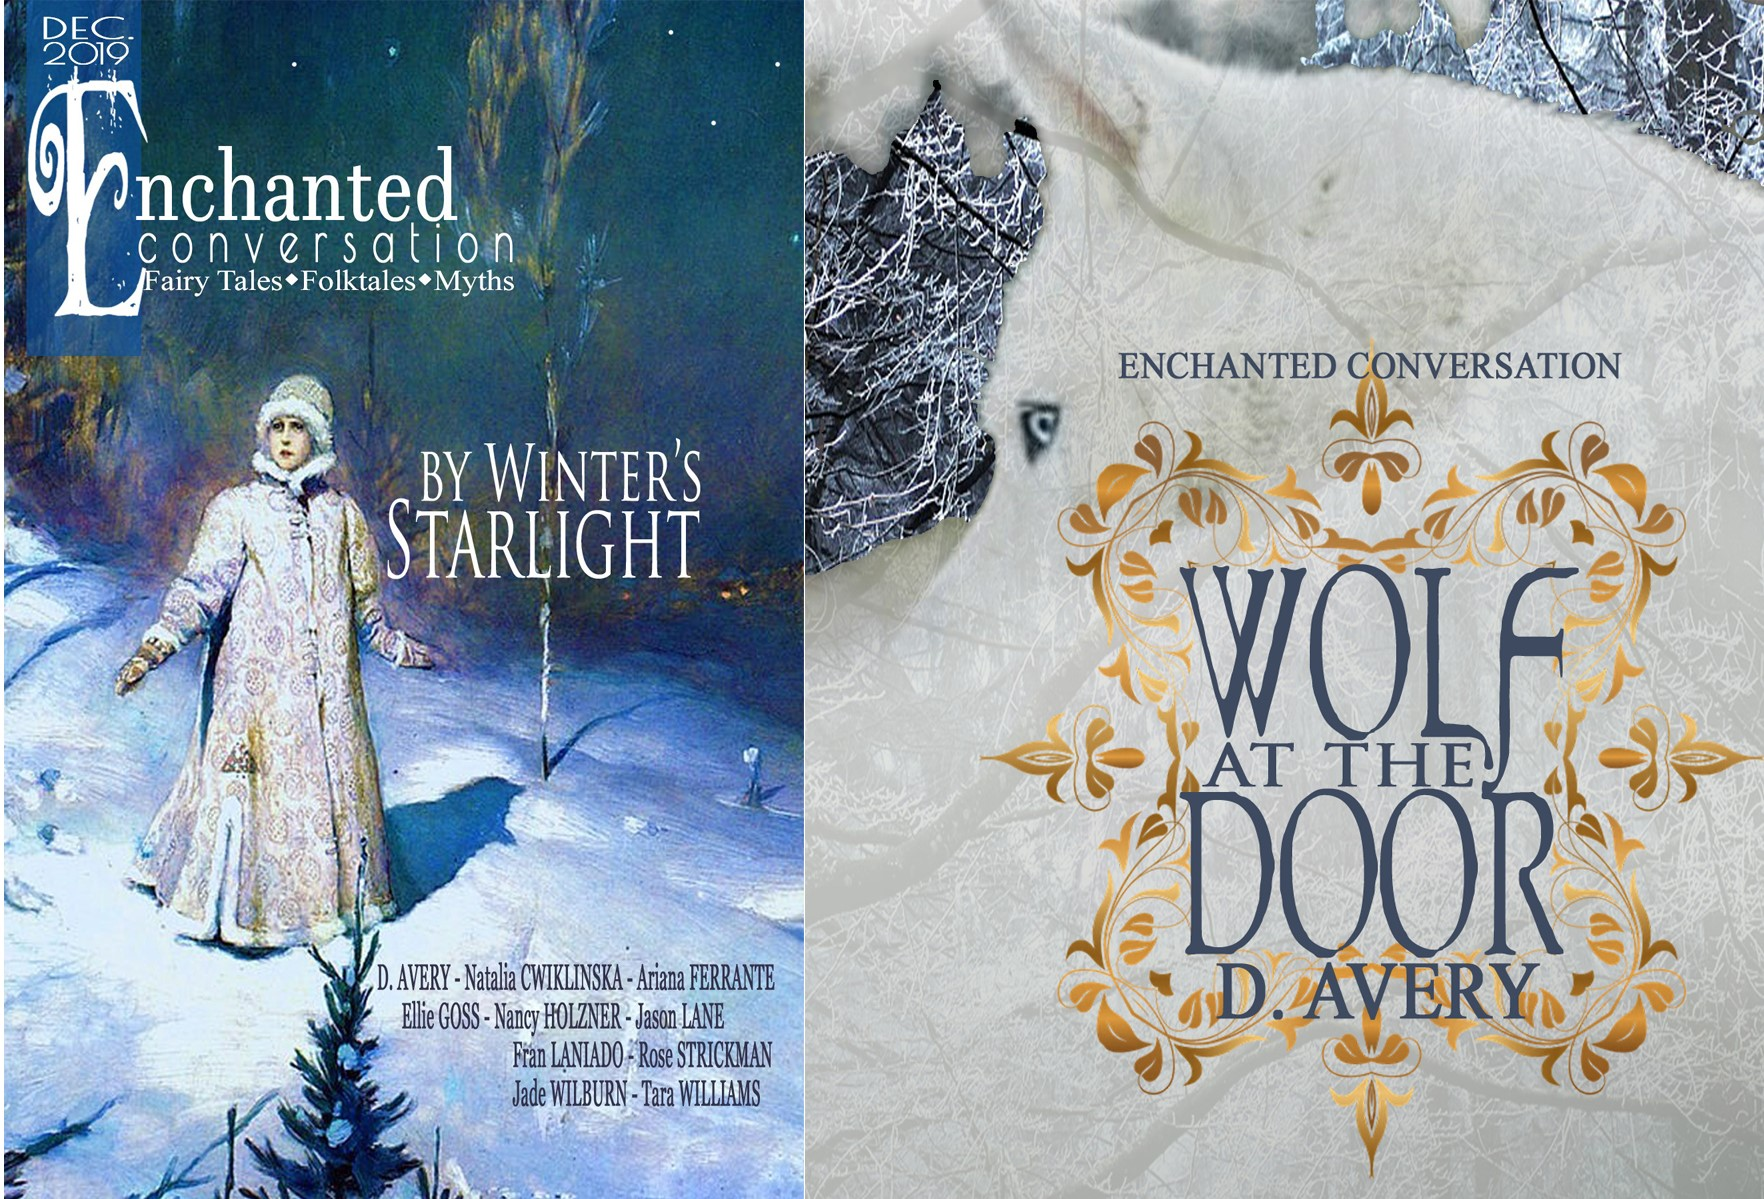 By Winter's Starlight-Wolf at the Door-Covers Bergloff